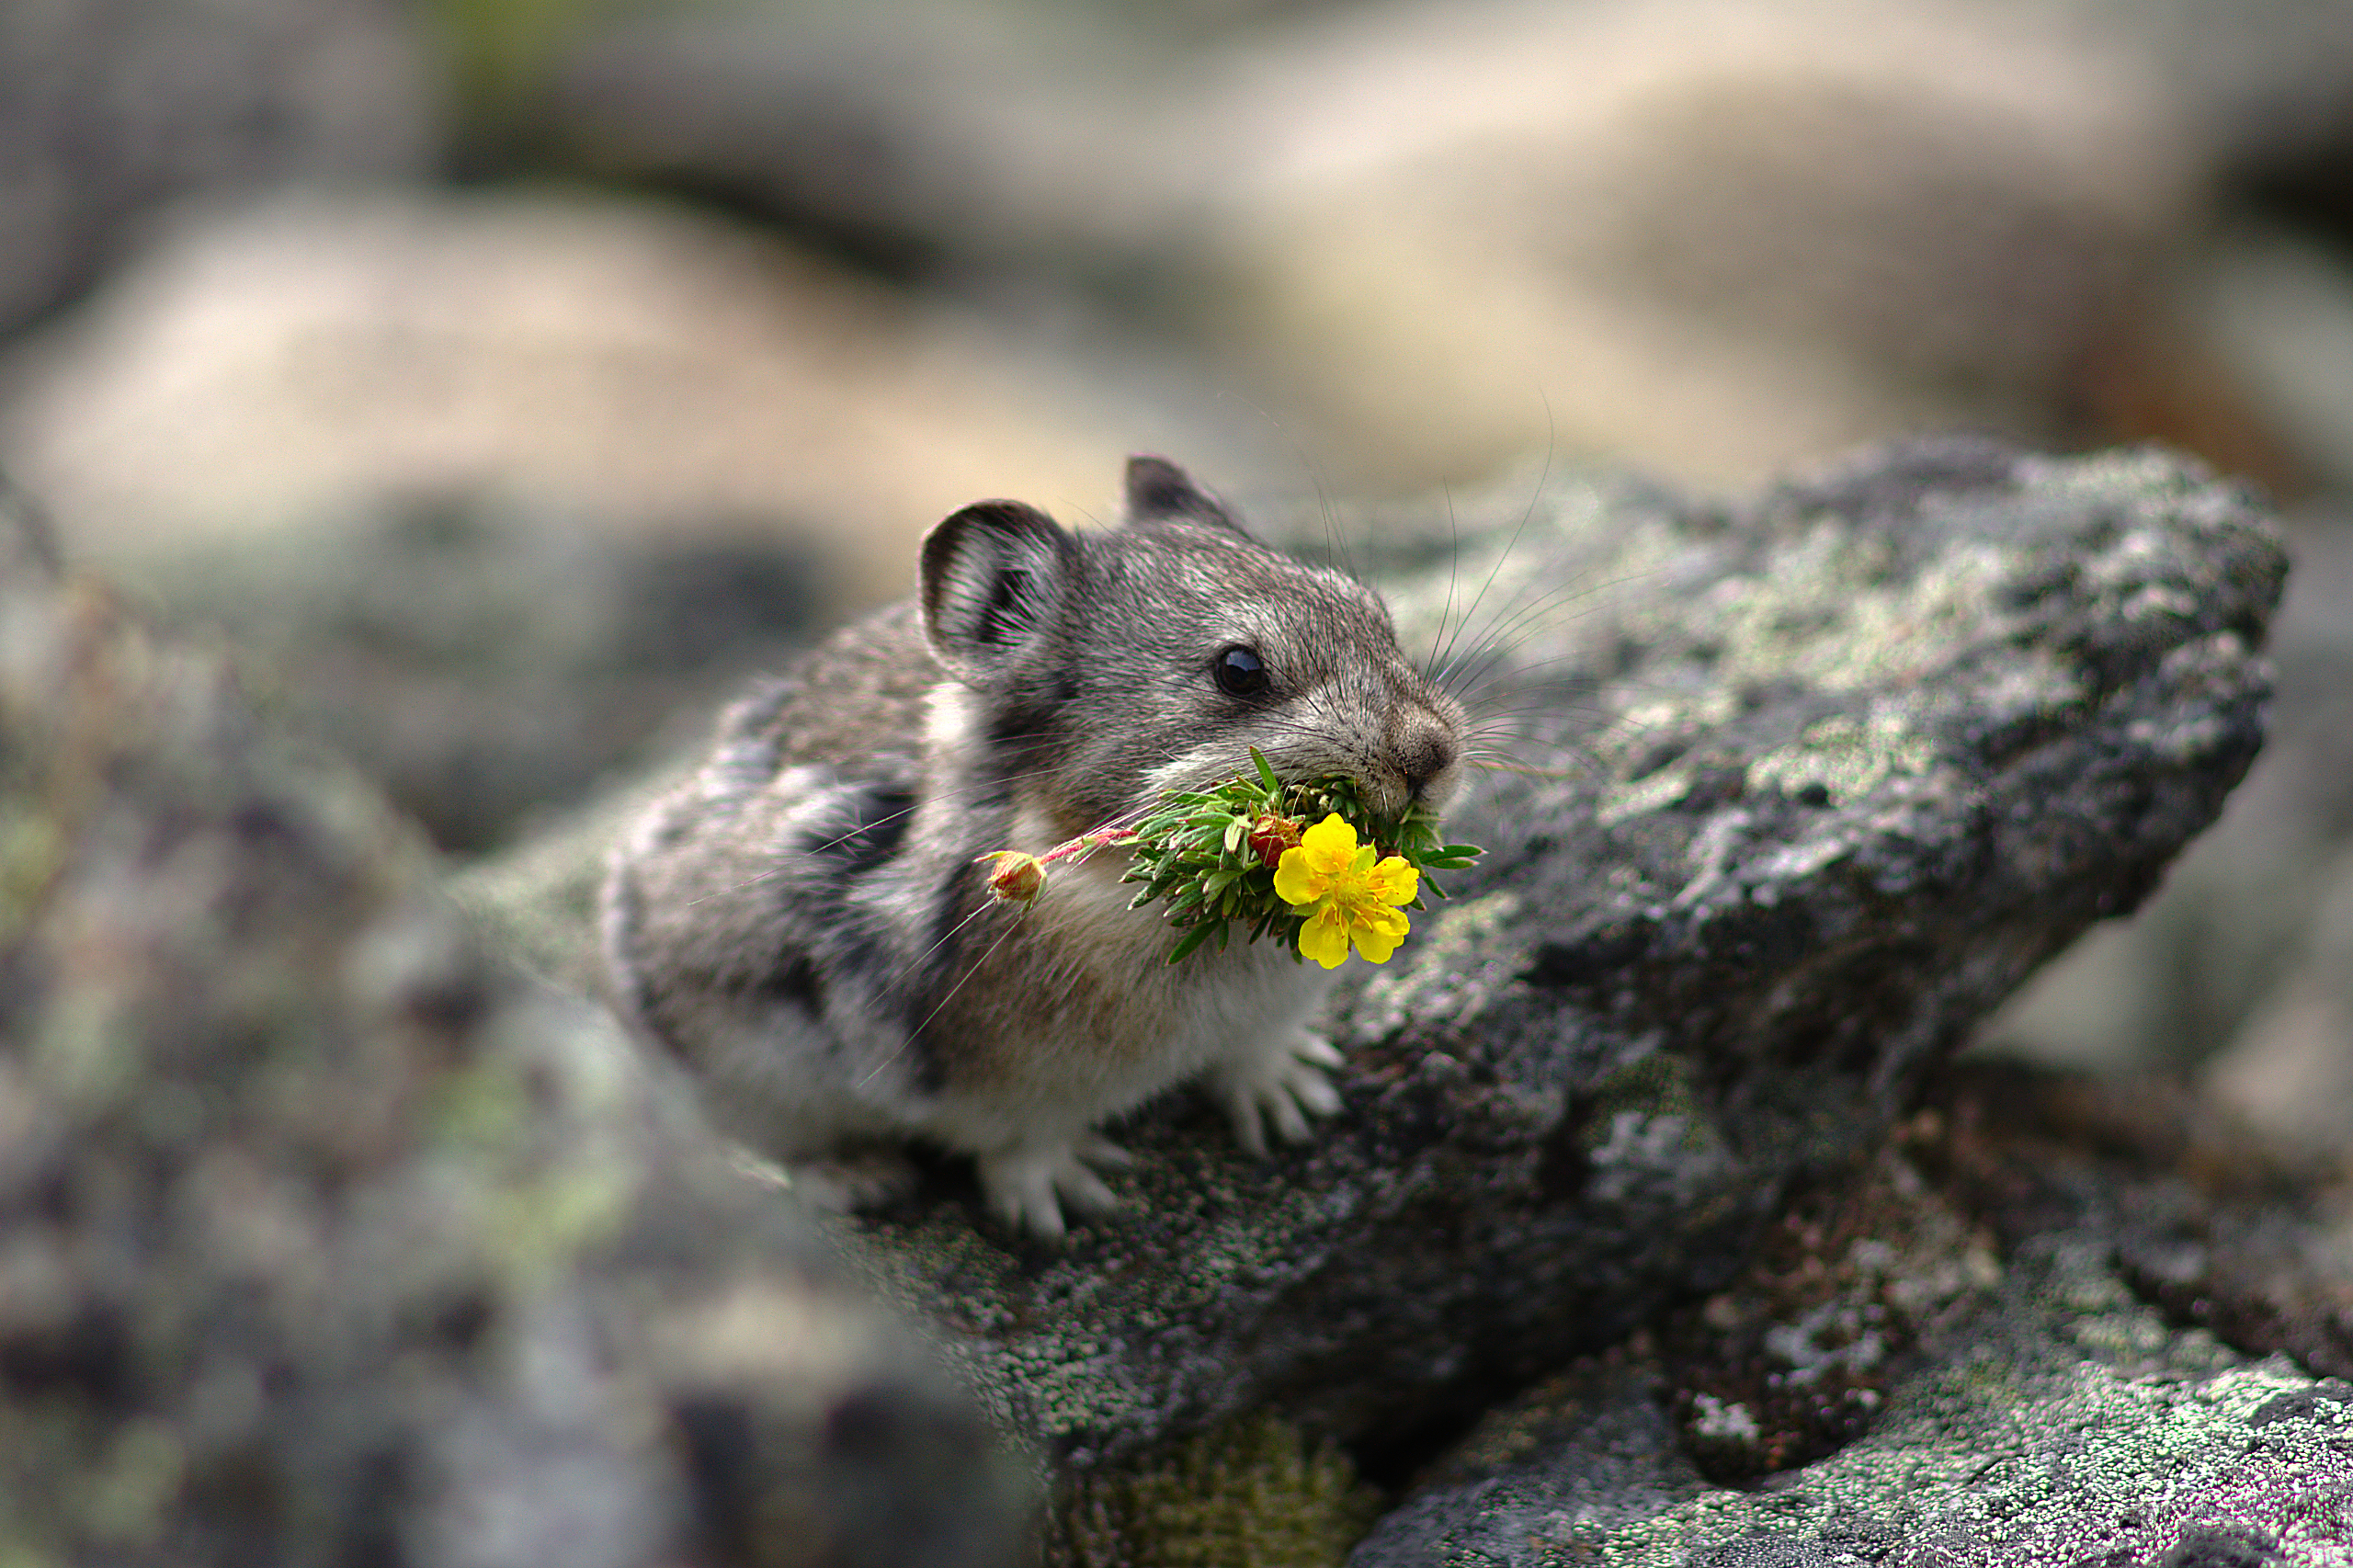 A pika sits on a rock with a bright yellow flower in its mouth.